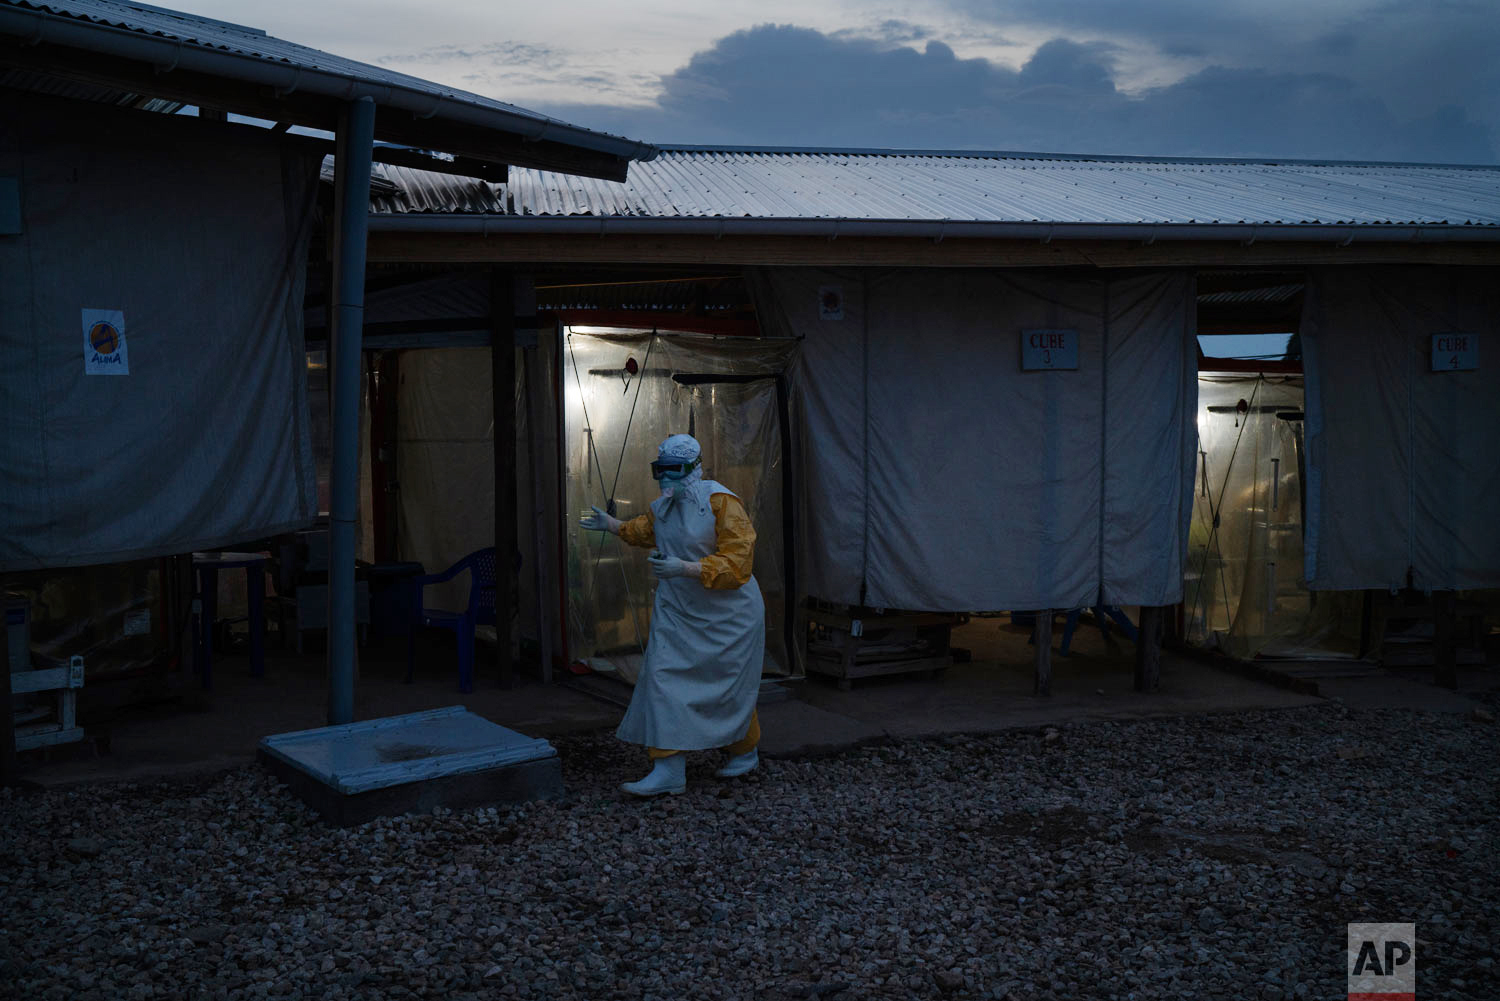 A health workers wearing protective suit walks out an isolation cube where he visited a patient at an Ebola treatment center in Beni, Congo, July 13, 2019. (AP Photo/Jerome Delay)